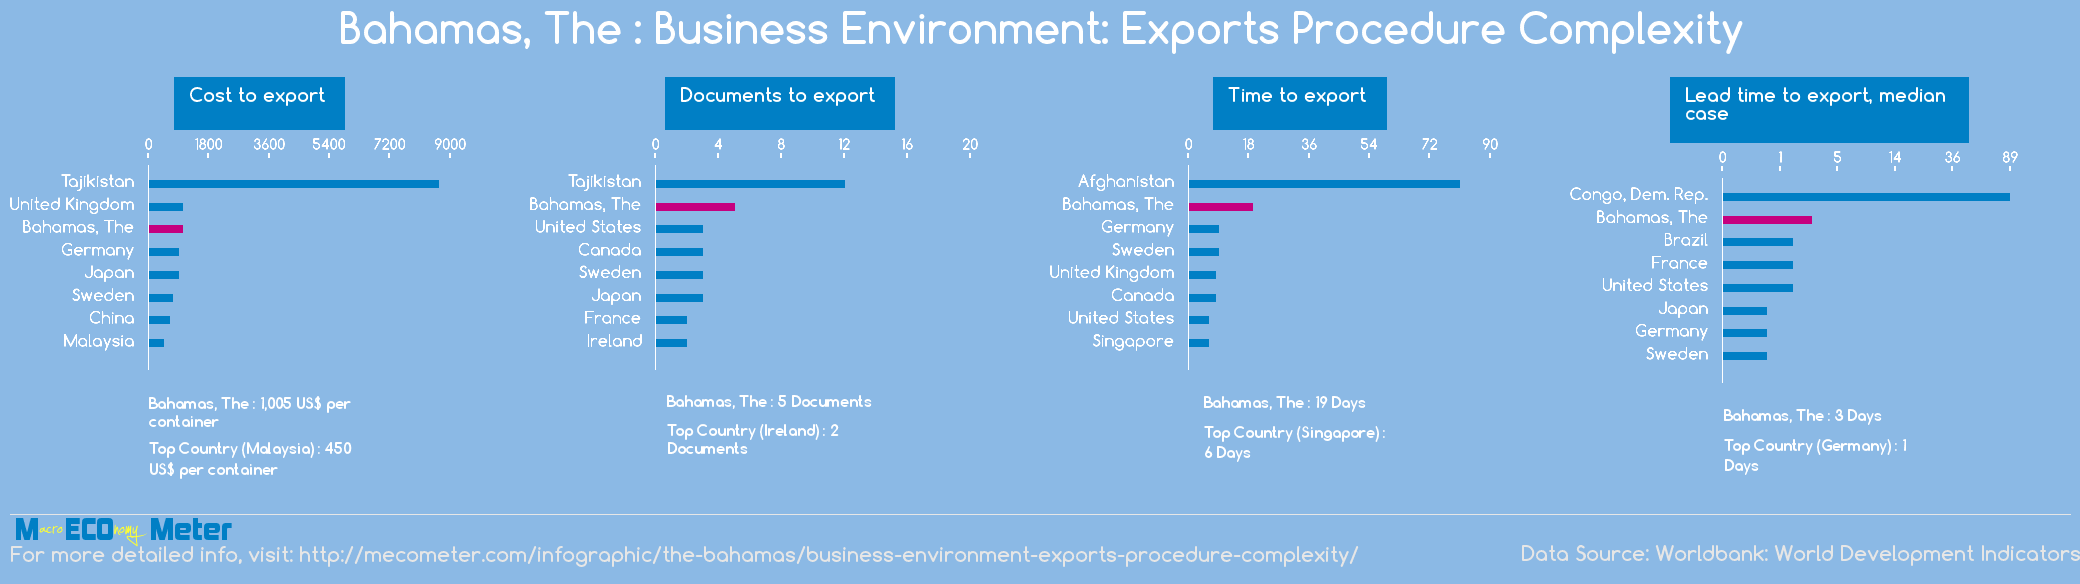 Bahamas, The : Business Environment: Exports Procedure Complexity